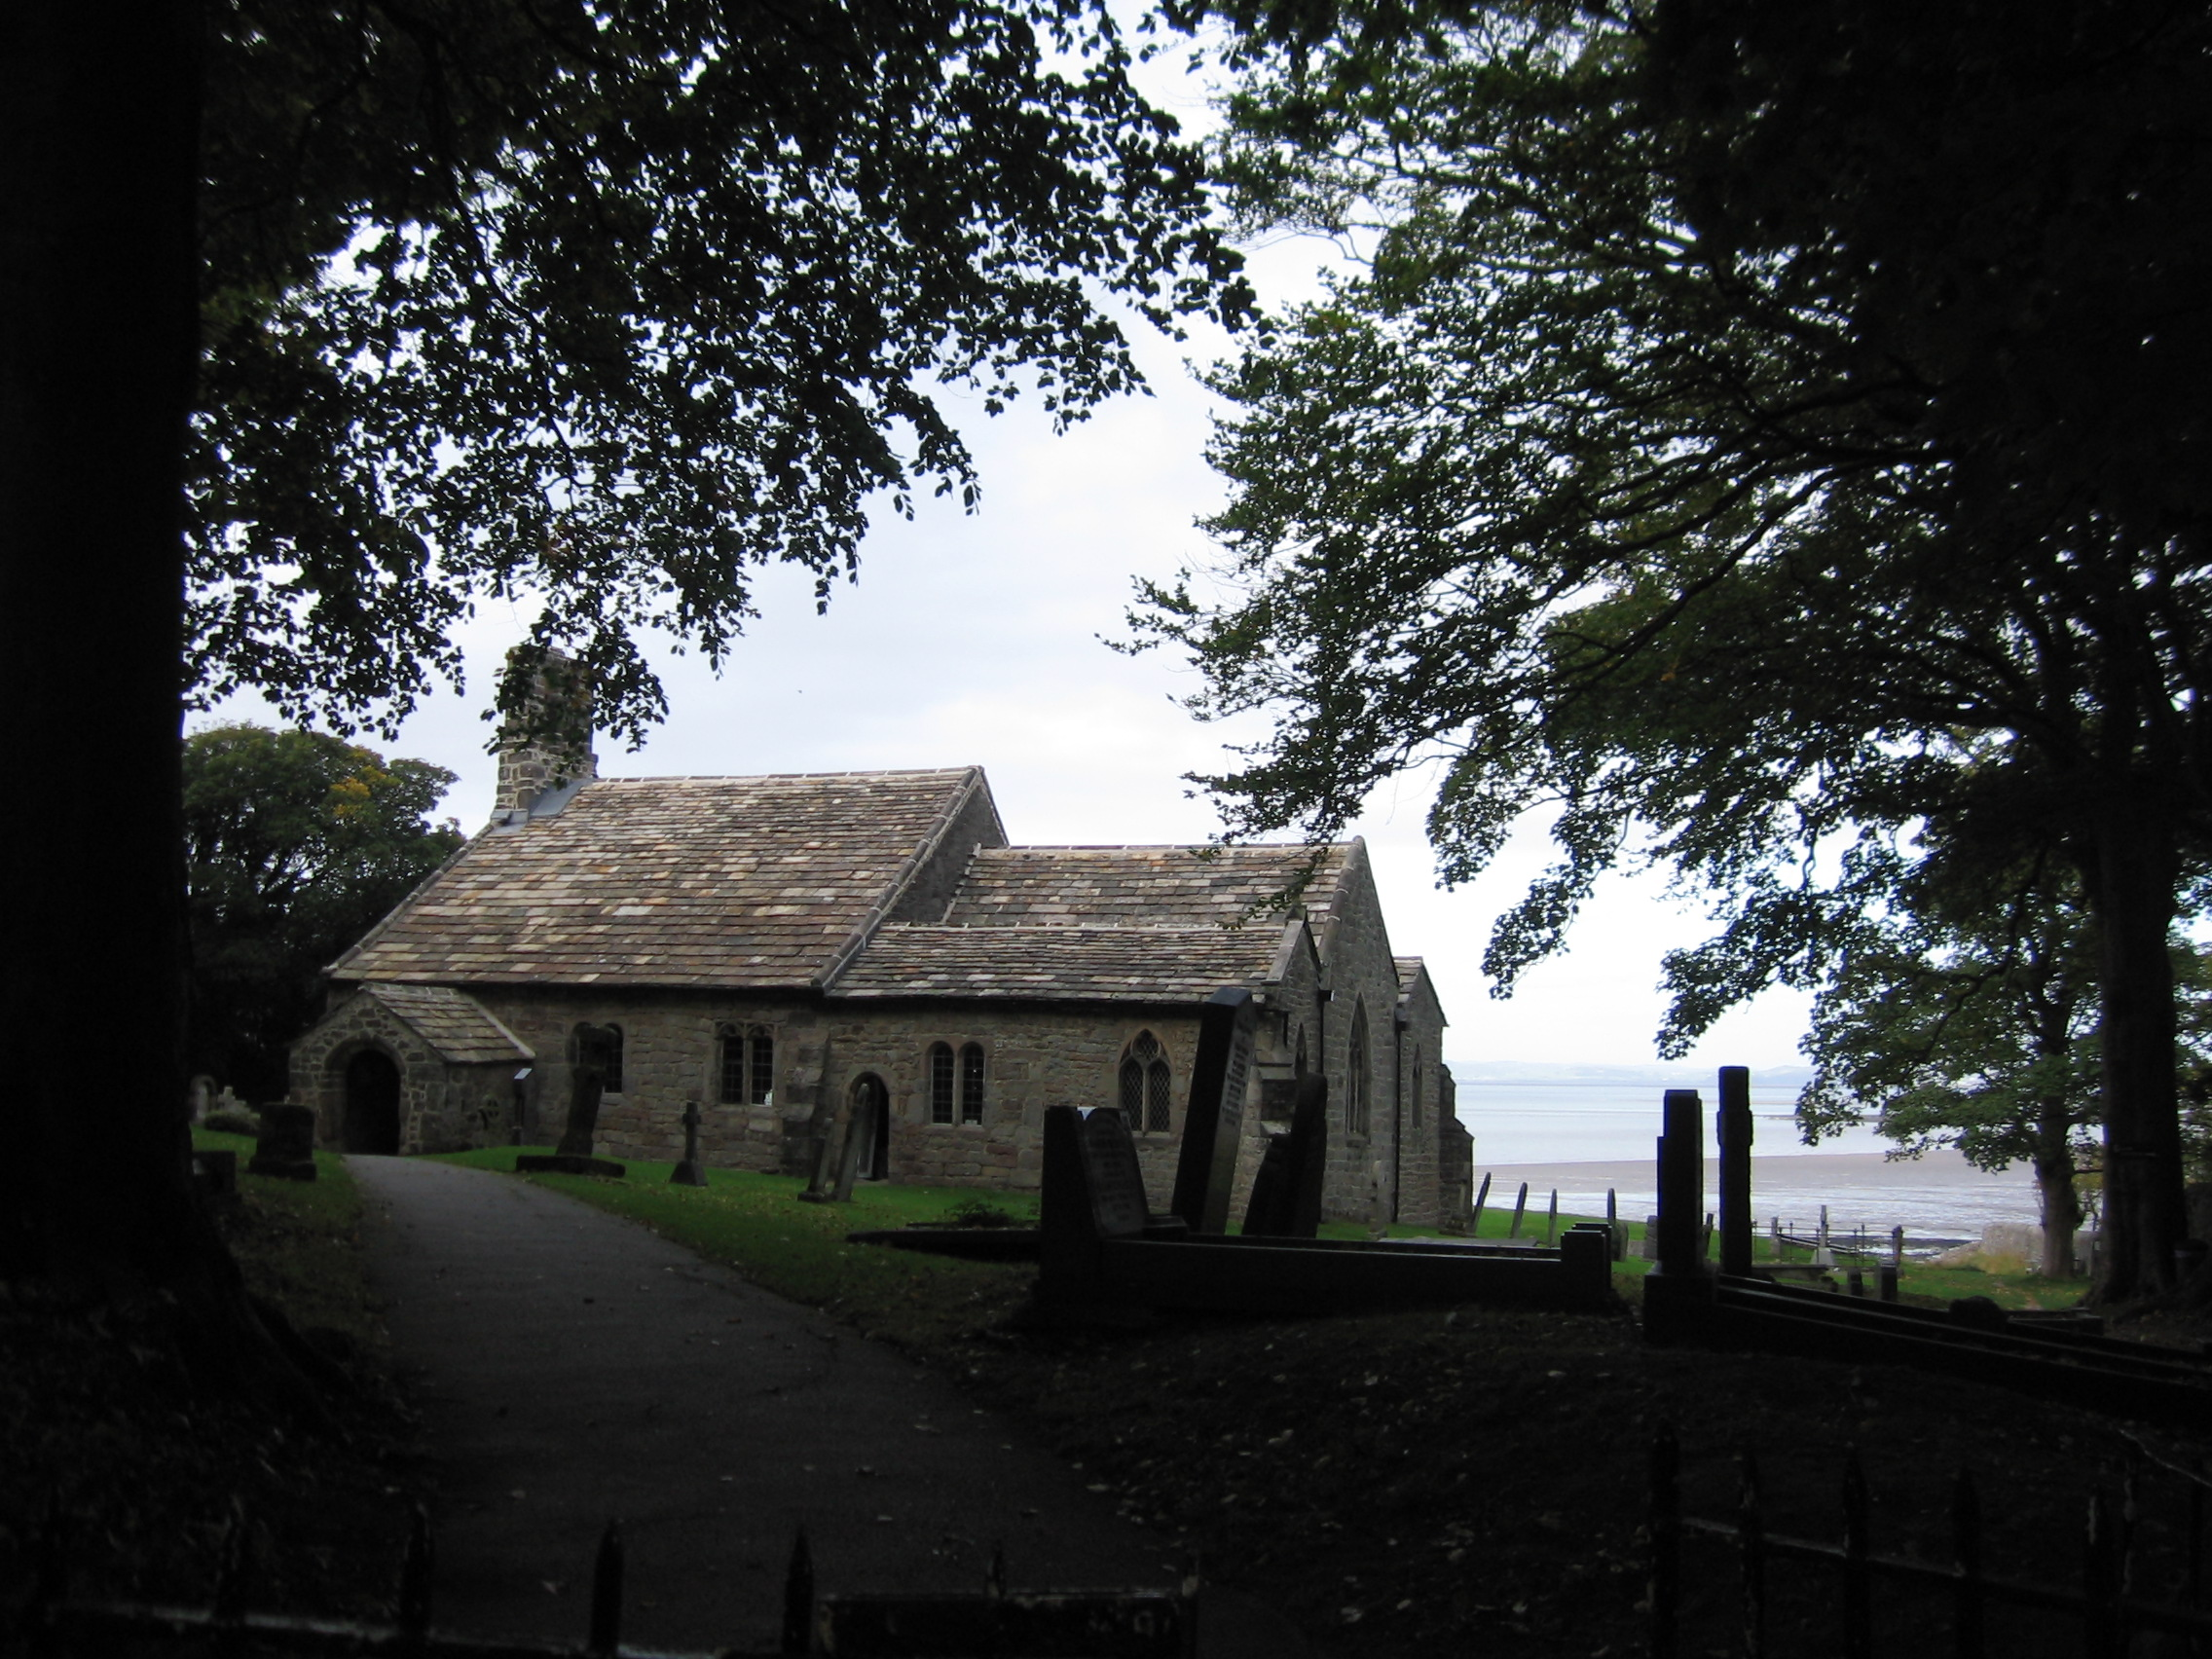 St. Peter's church in Heysham